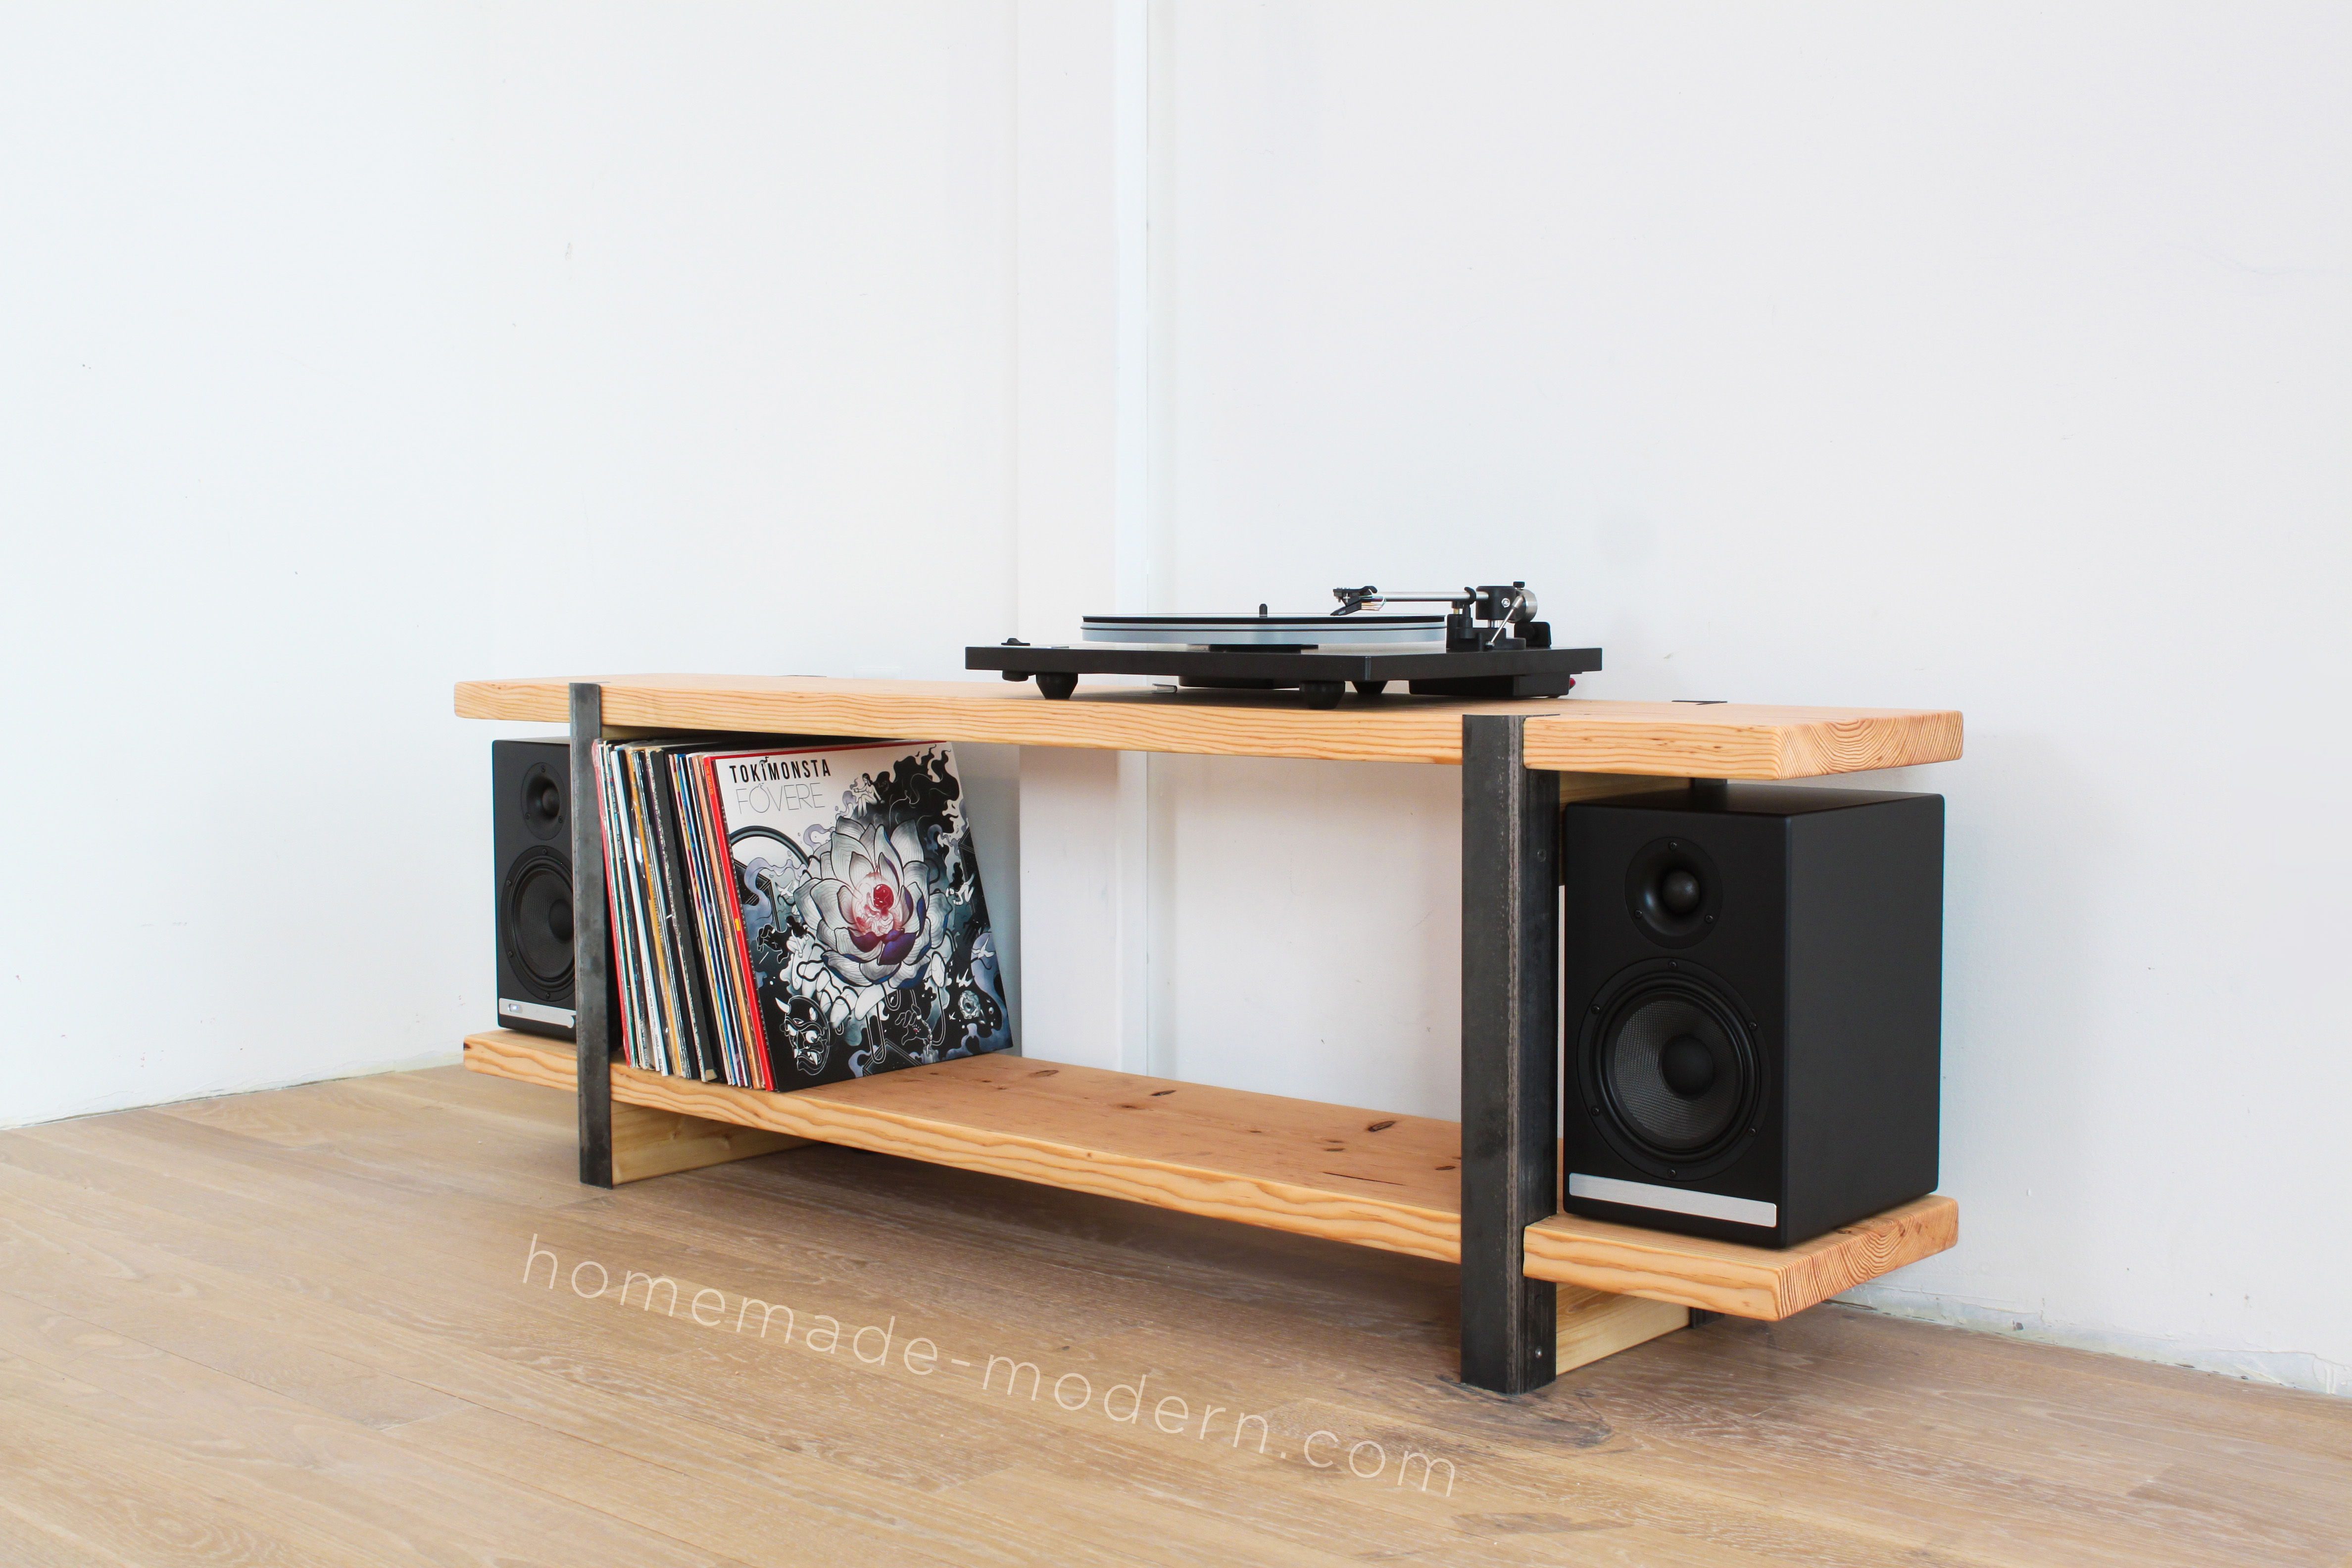 This DIY Media Console is made out of 2x12 and angle irons and the shelves were designed to store vinyl records. For more information go to HomeMade-Modern.com